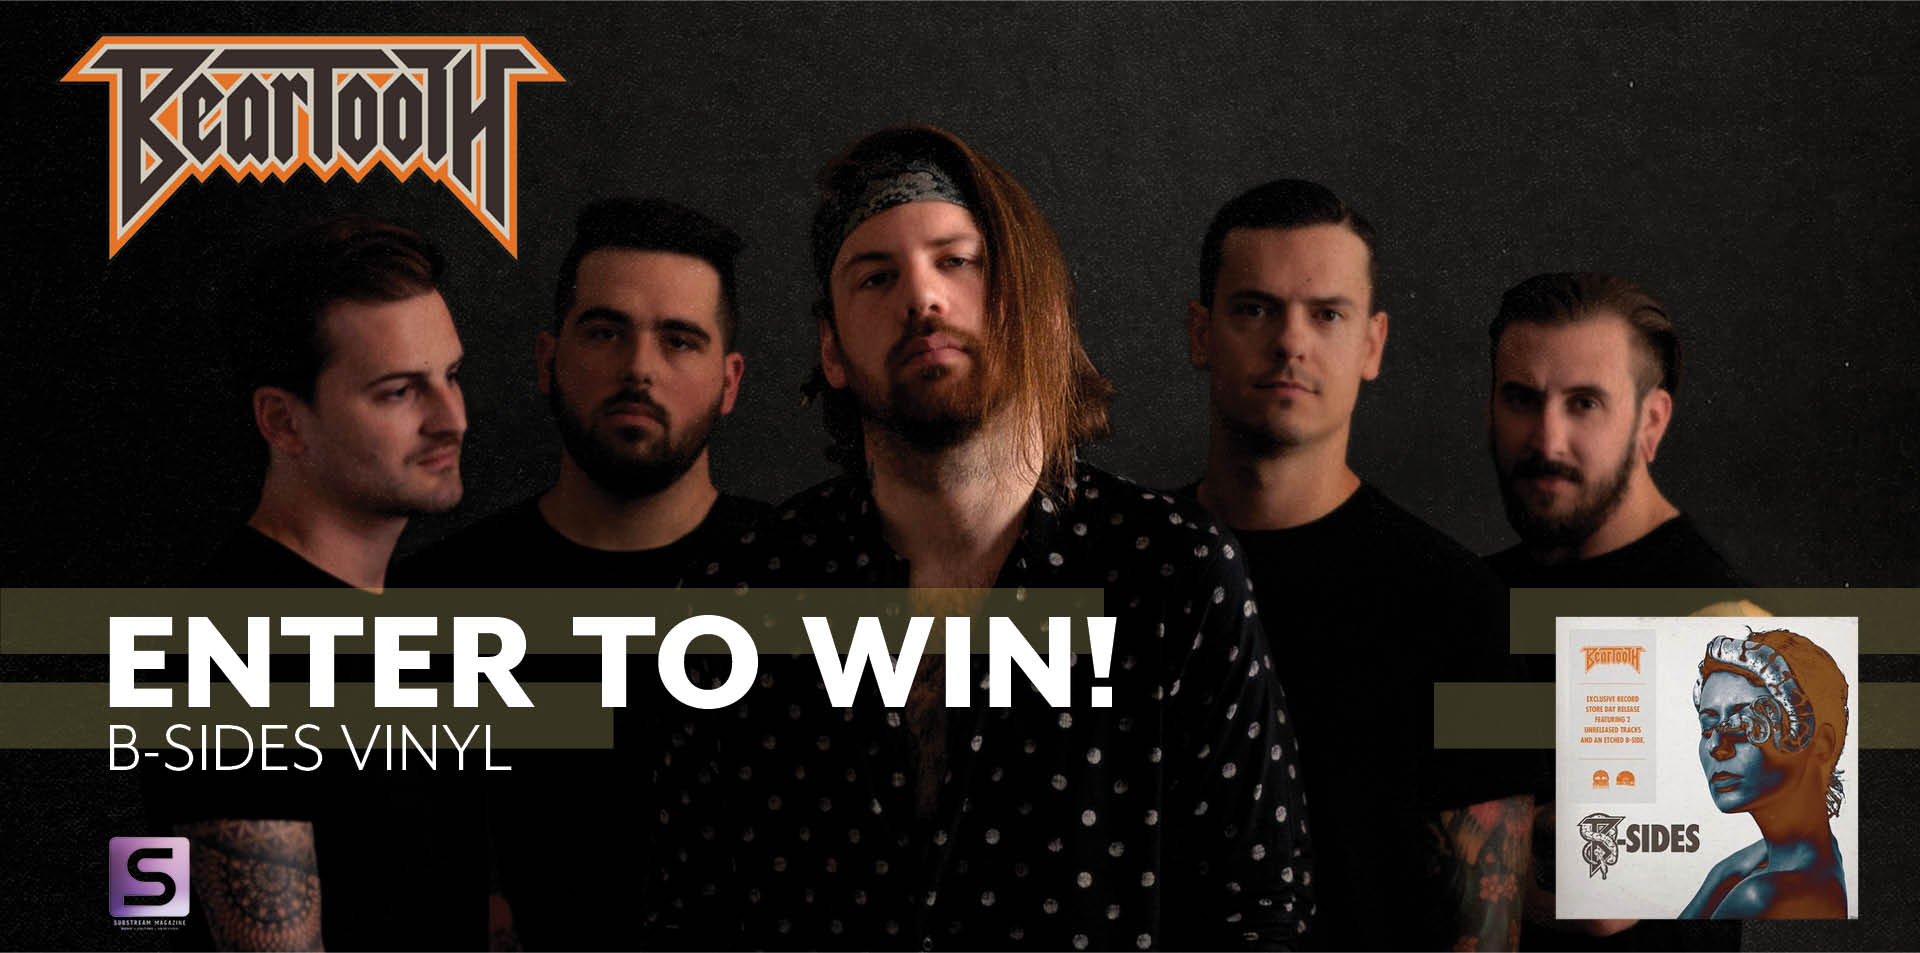 BEARTOOTH B-SIDES GIVEAWAY